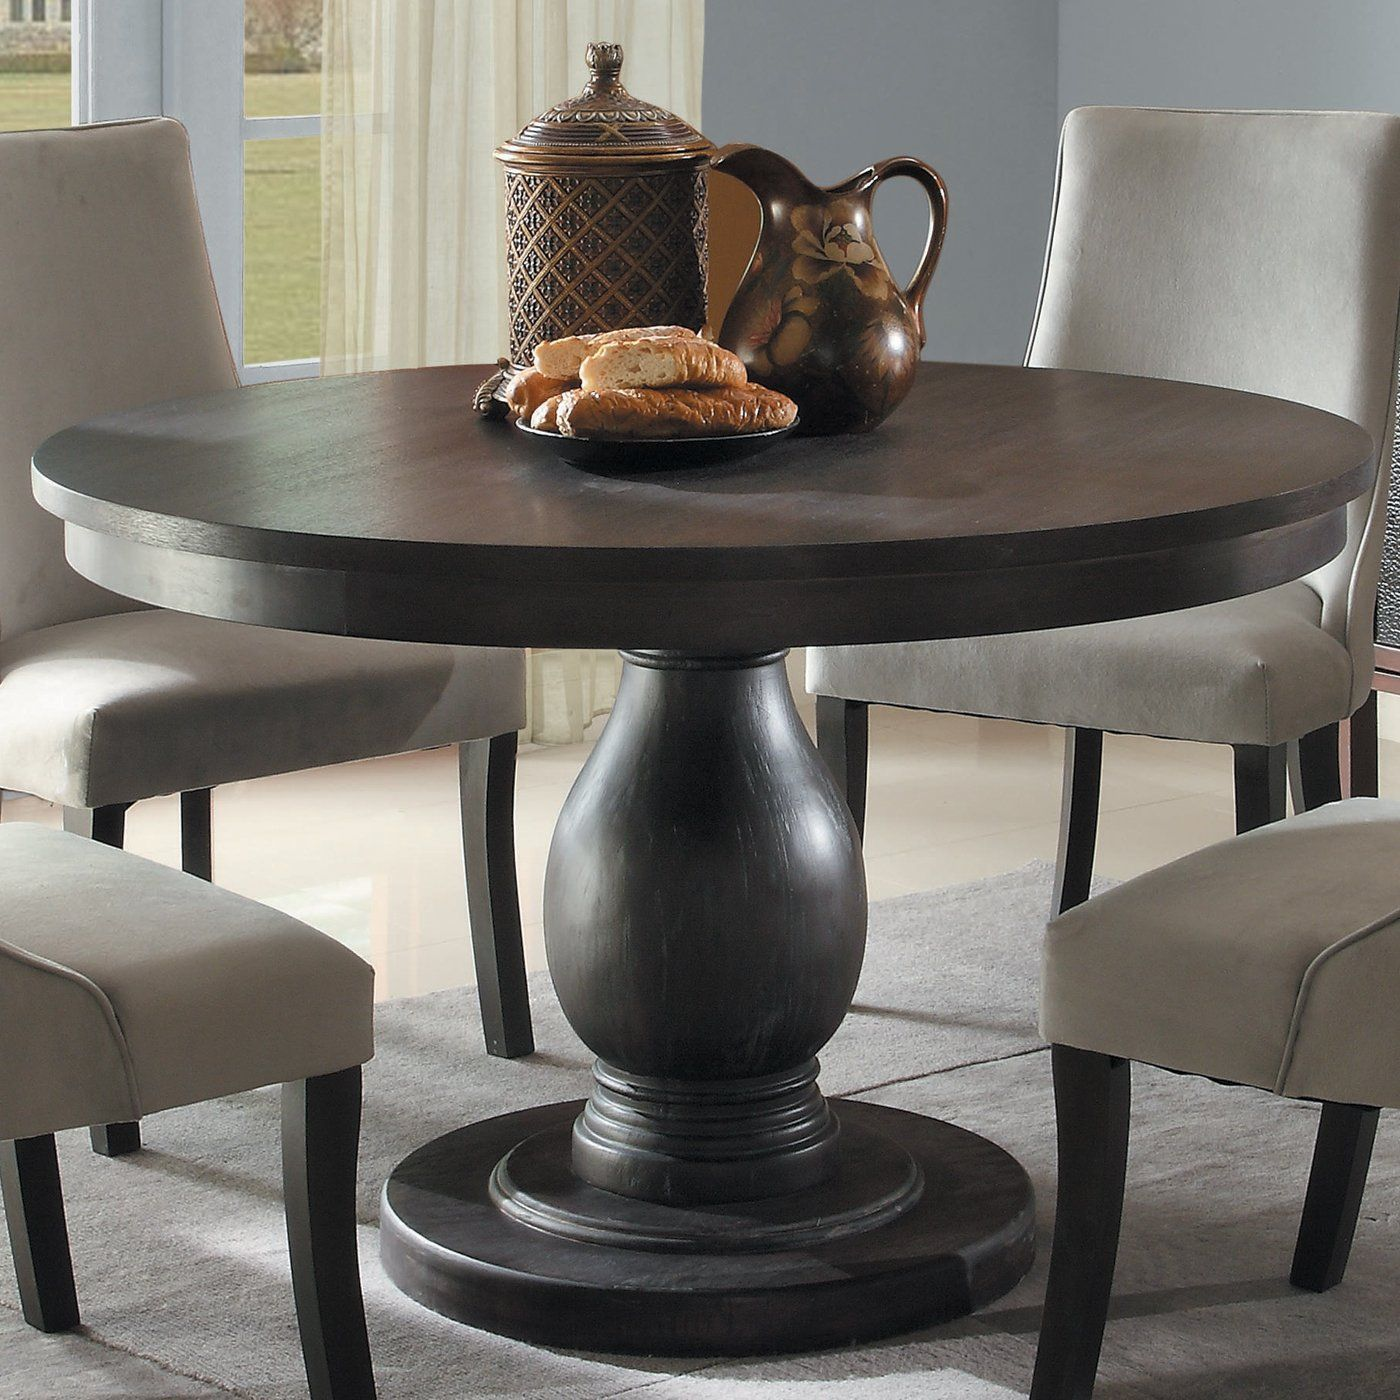 The Circular Dining Room: Homelegance 2466-48 Dandelion Dining Table